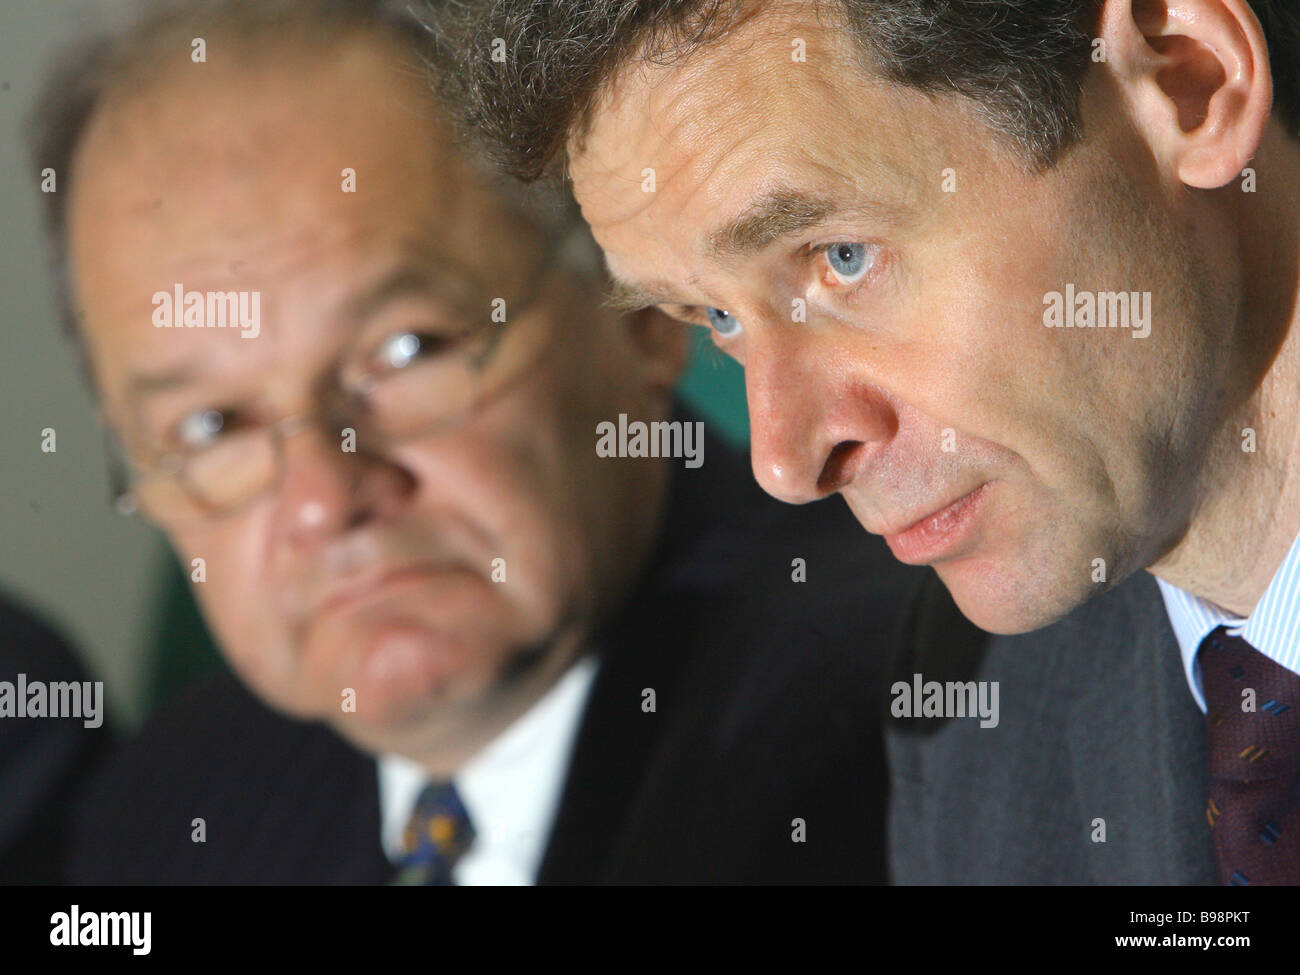 From left to right Neven Mates head of the IMF representative office in Moscow and Paul Tomsen head of the IMF mission - Stock Image